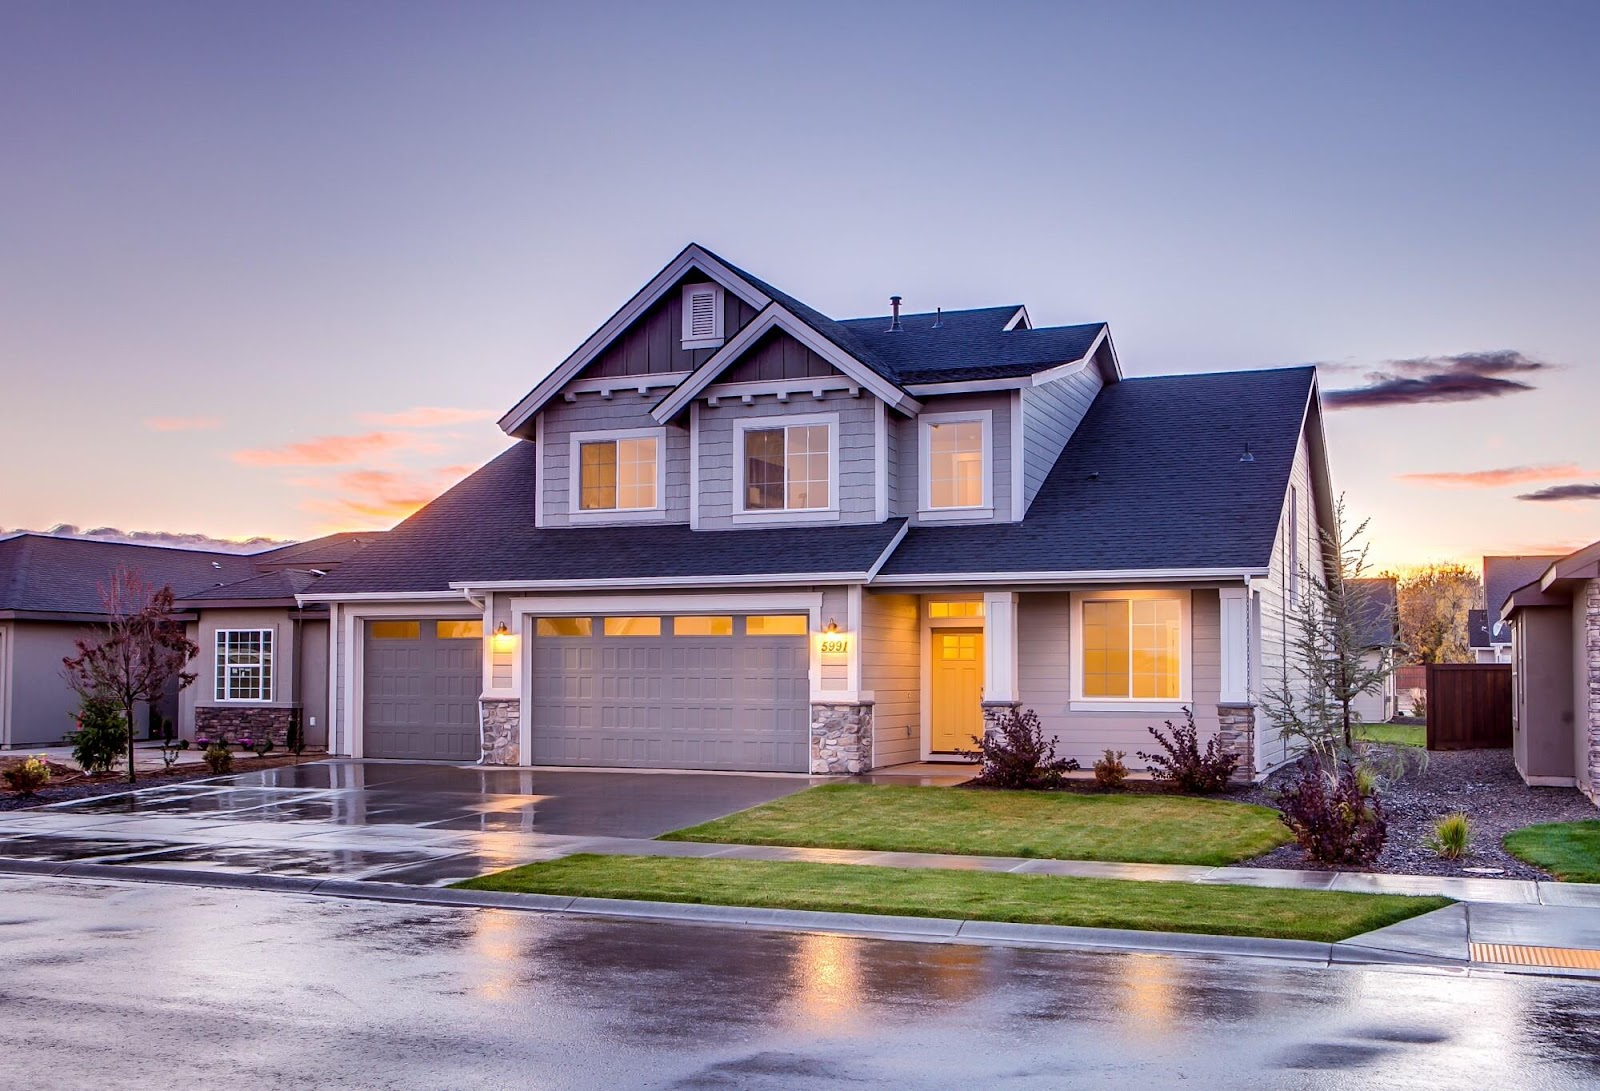 5 Exceptional Tips for Housing Exterior Renovations